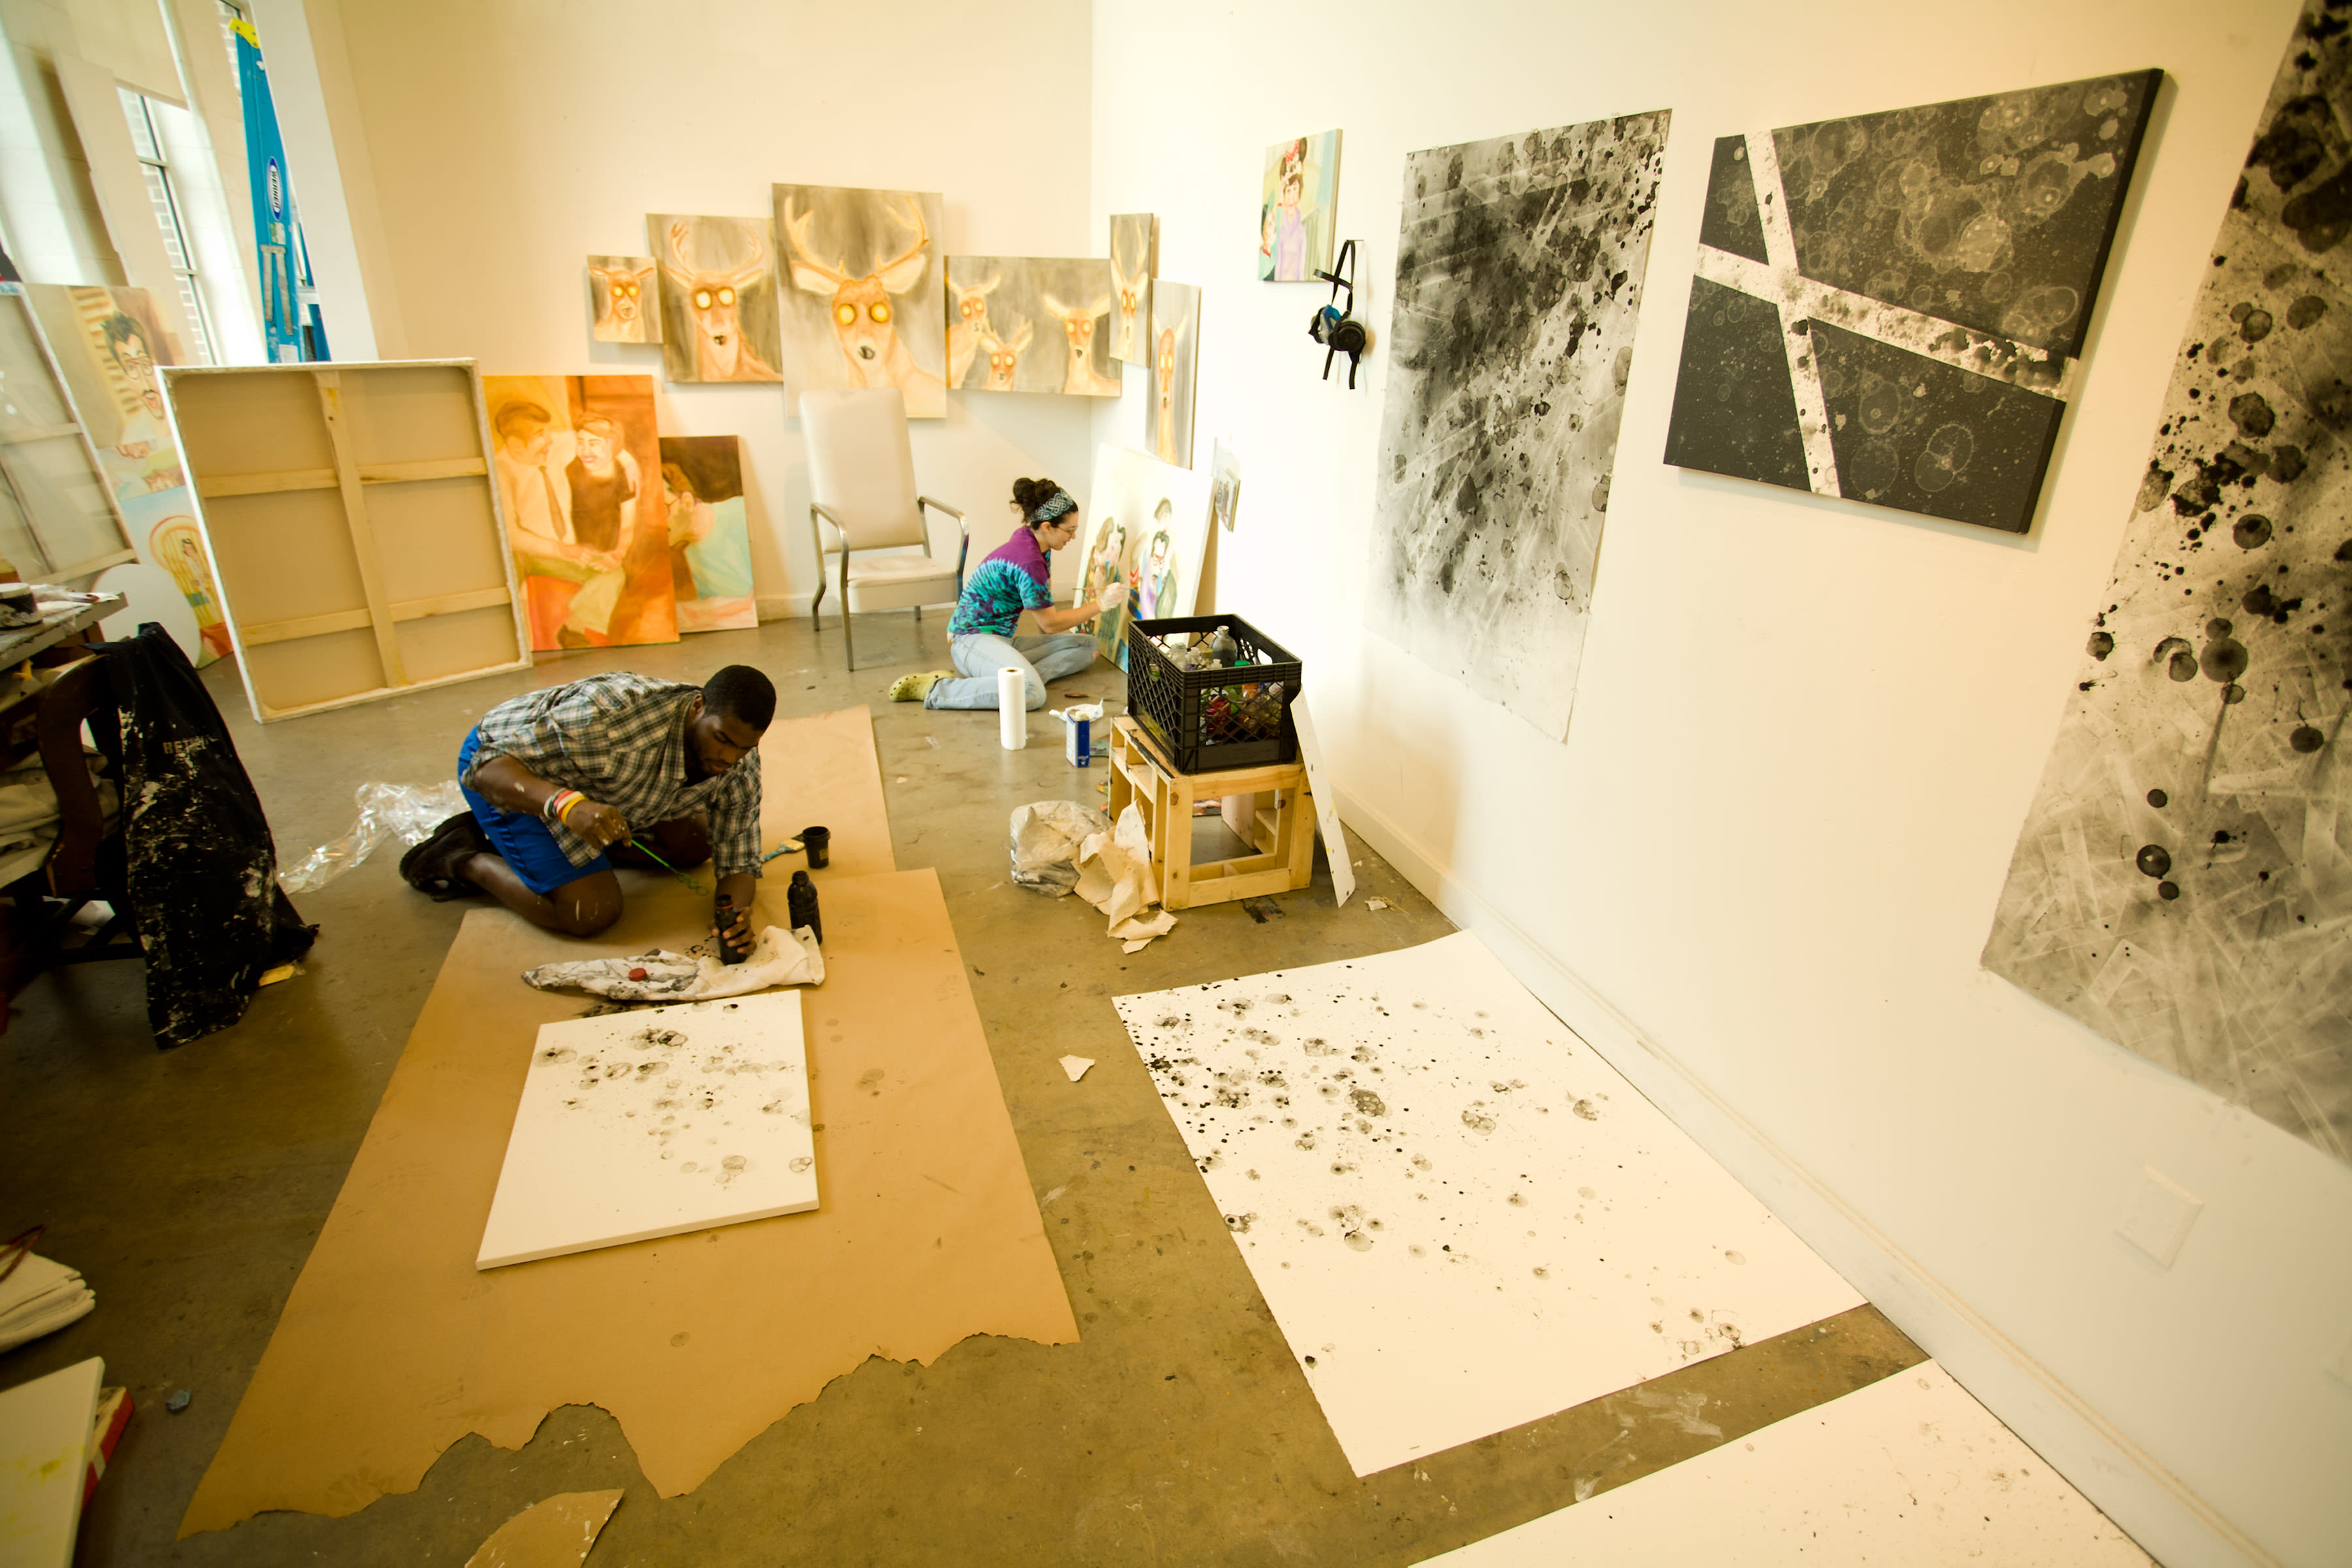 Senior art students are eligible for studio space on campus